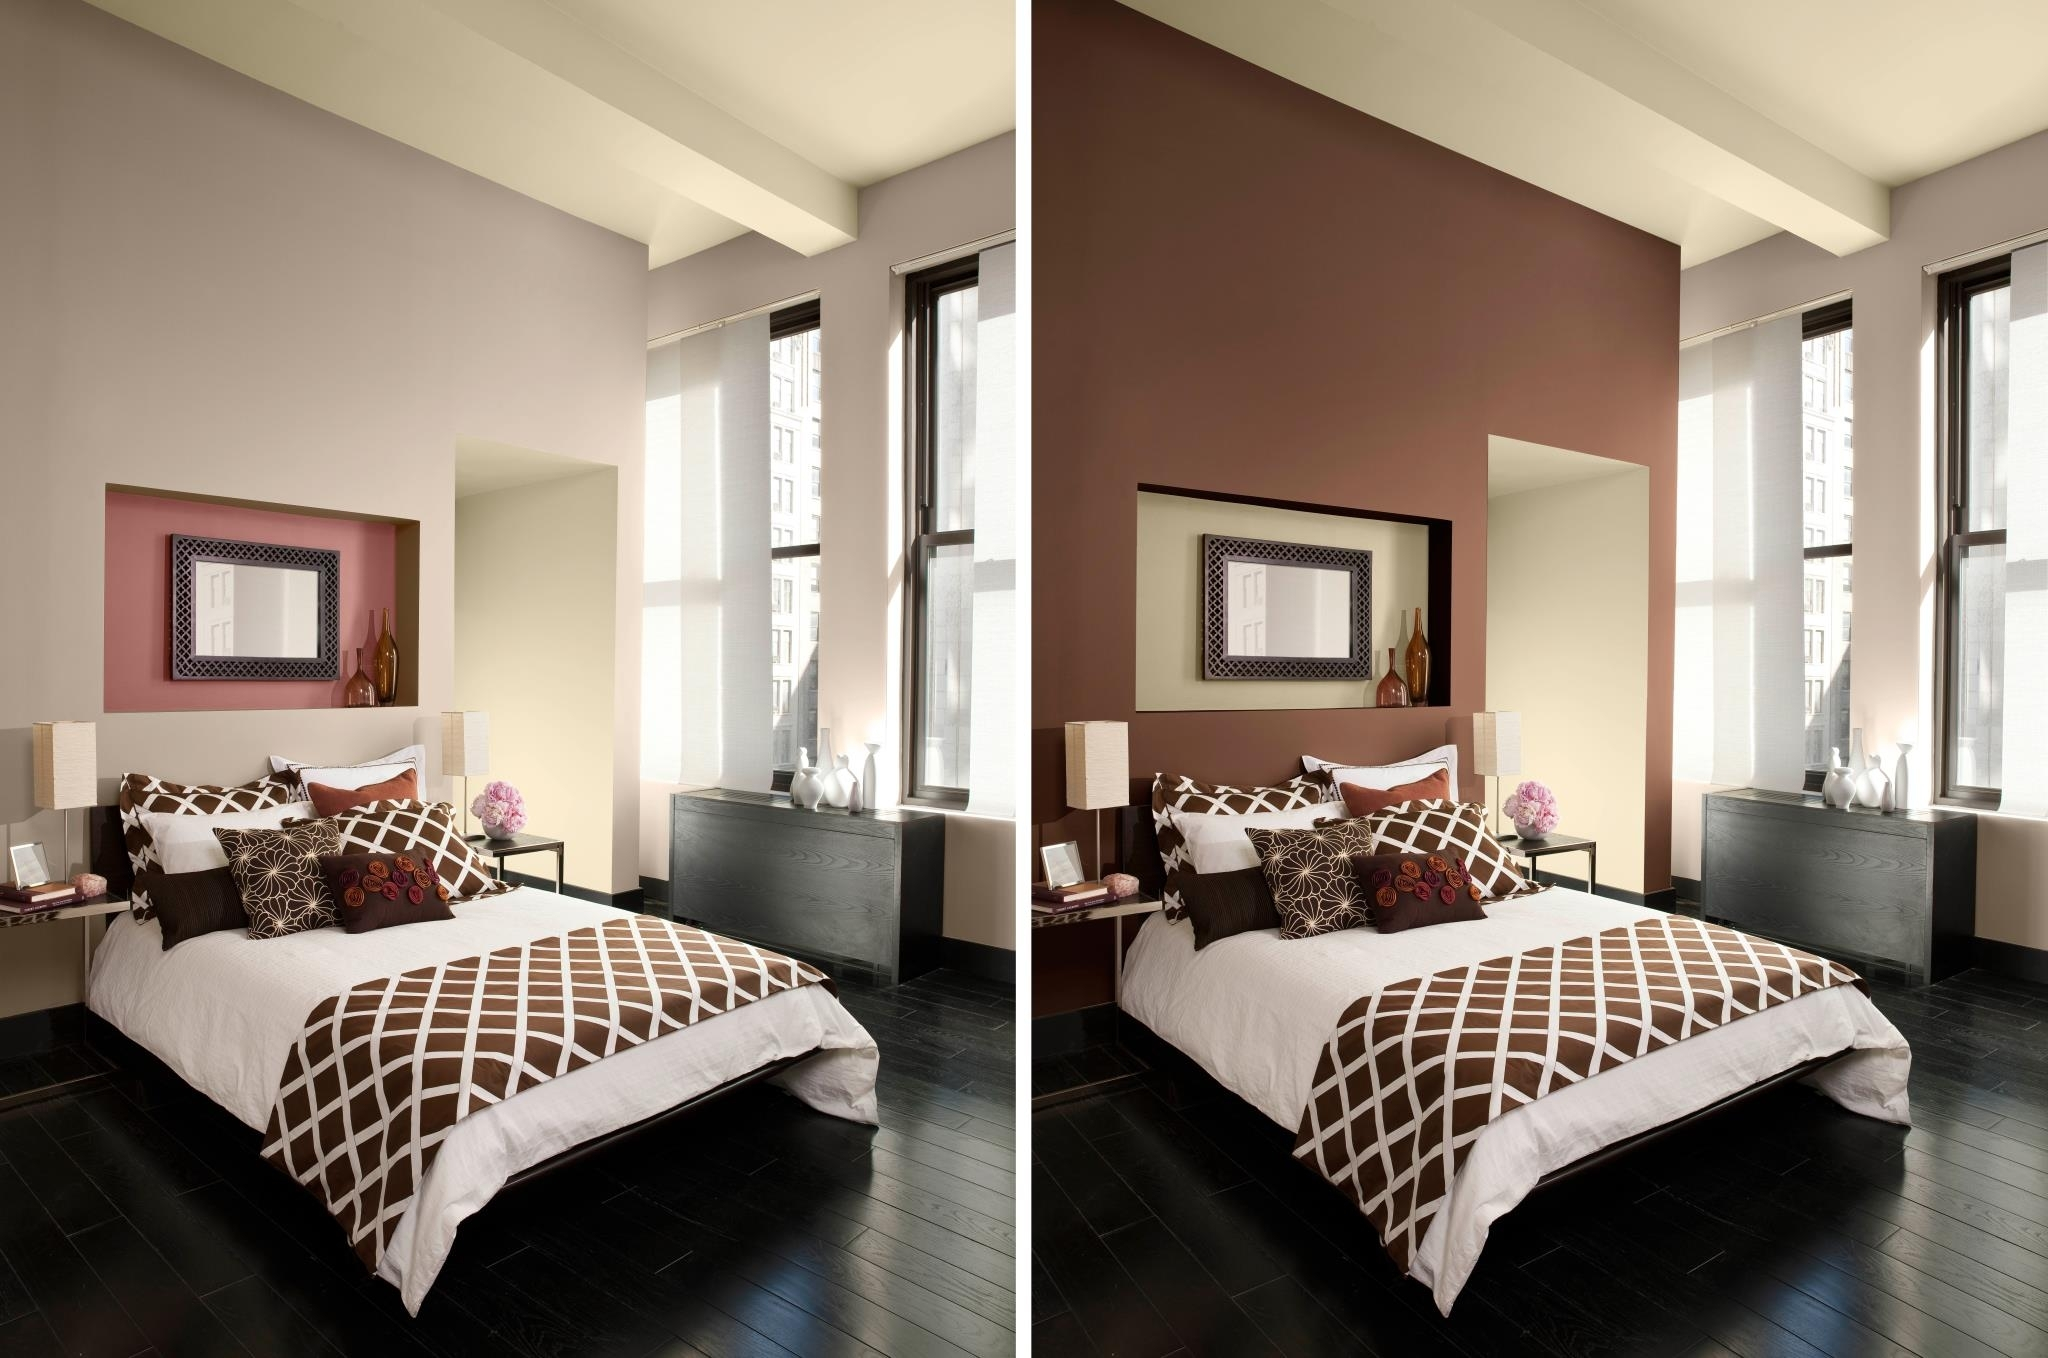 Easy Paint Designs For Walls Accent Wall Colors Ideas Wall Paint With Regard To 2017 Wall Accents With Paint (View 5 of 15)